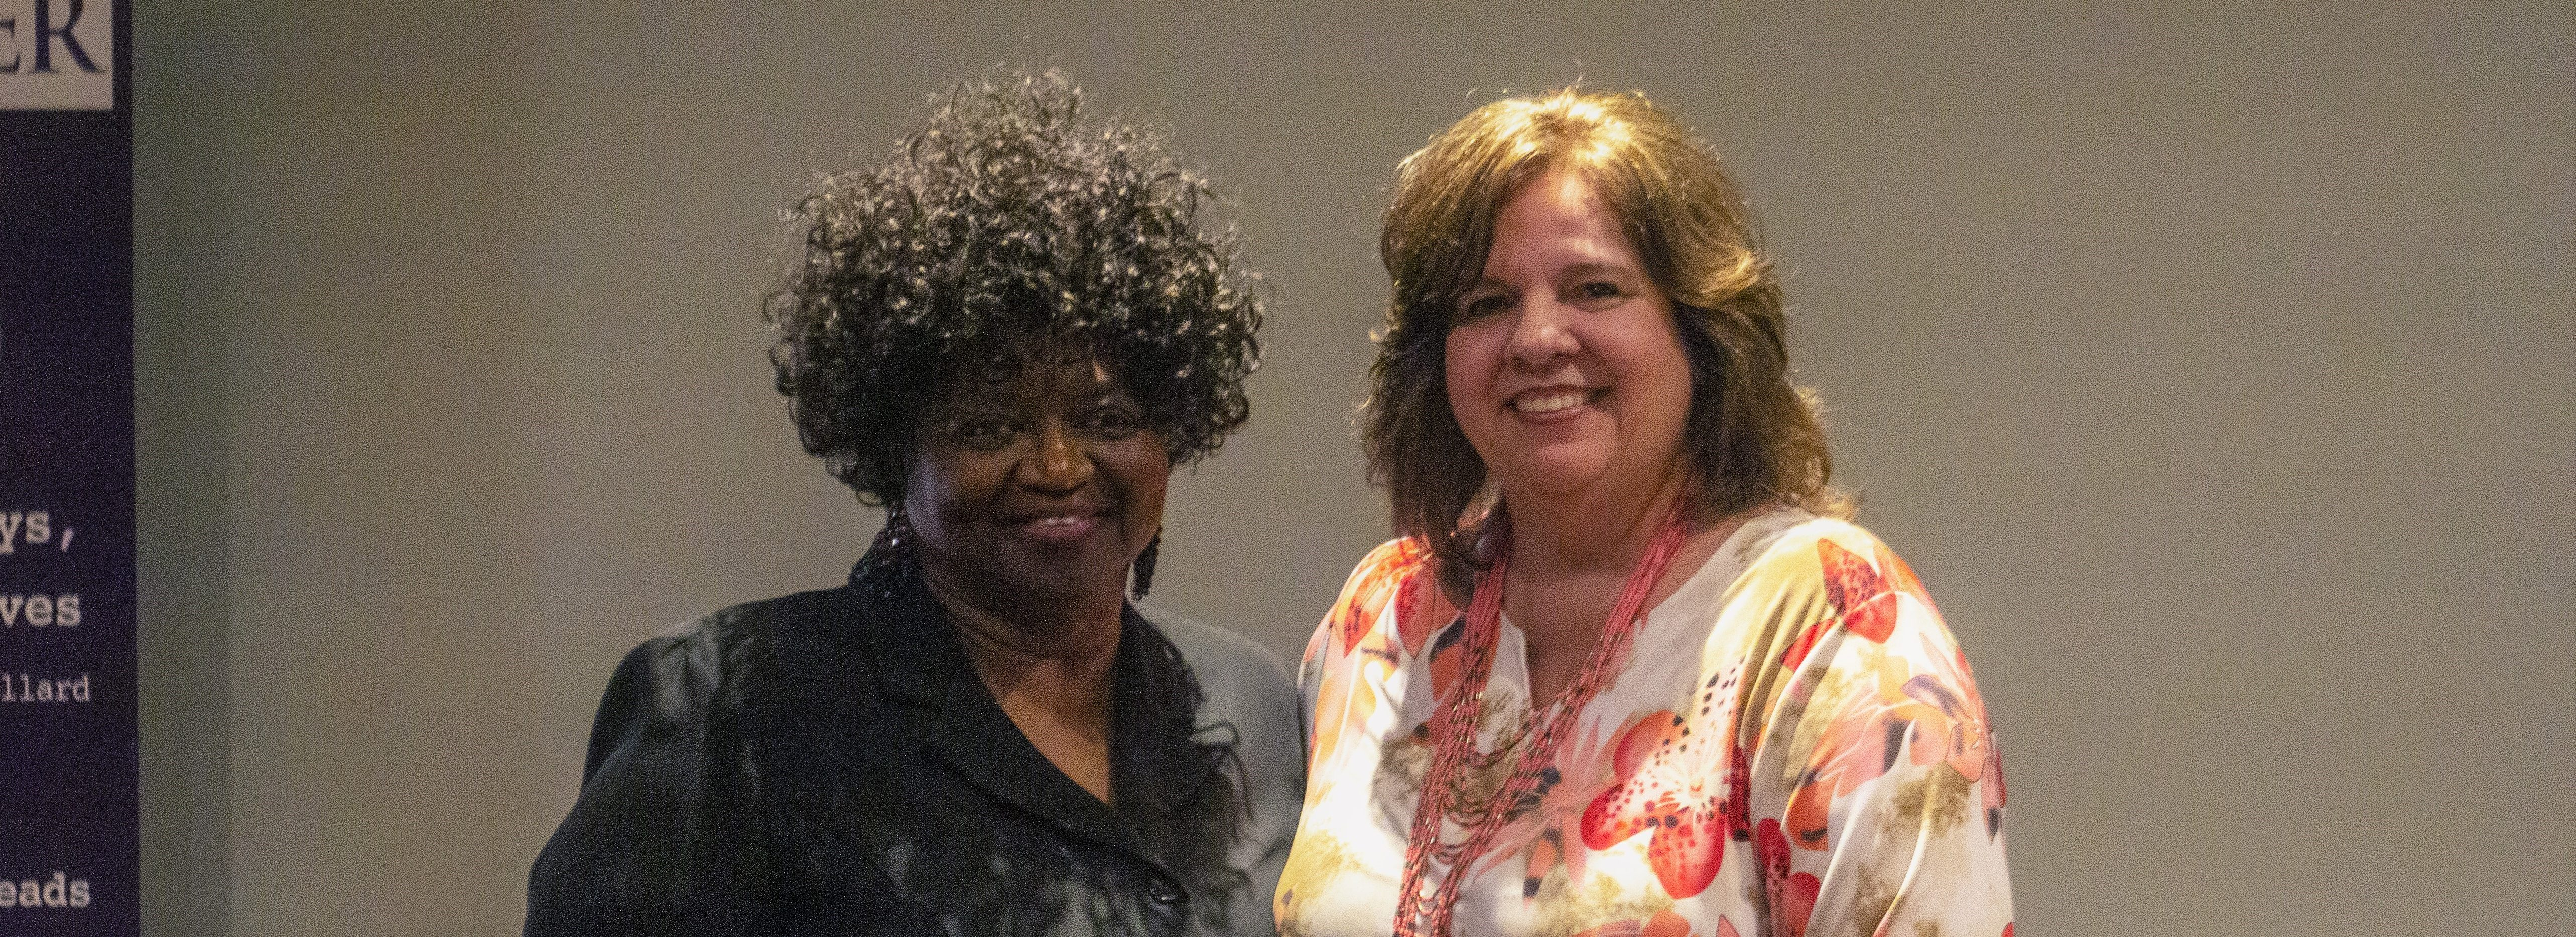 Pictured are honoree Linda Burns (left) and Donna Reynolds, director of the Foster Grandparent program at Ouachita, during the Elrod Center's annual community service awards banquet. Burns was honored for 25 years of service with the program.